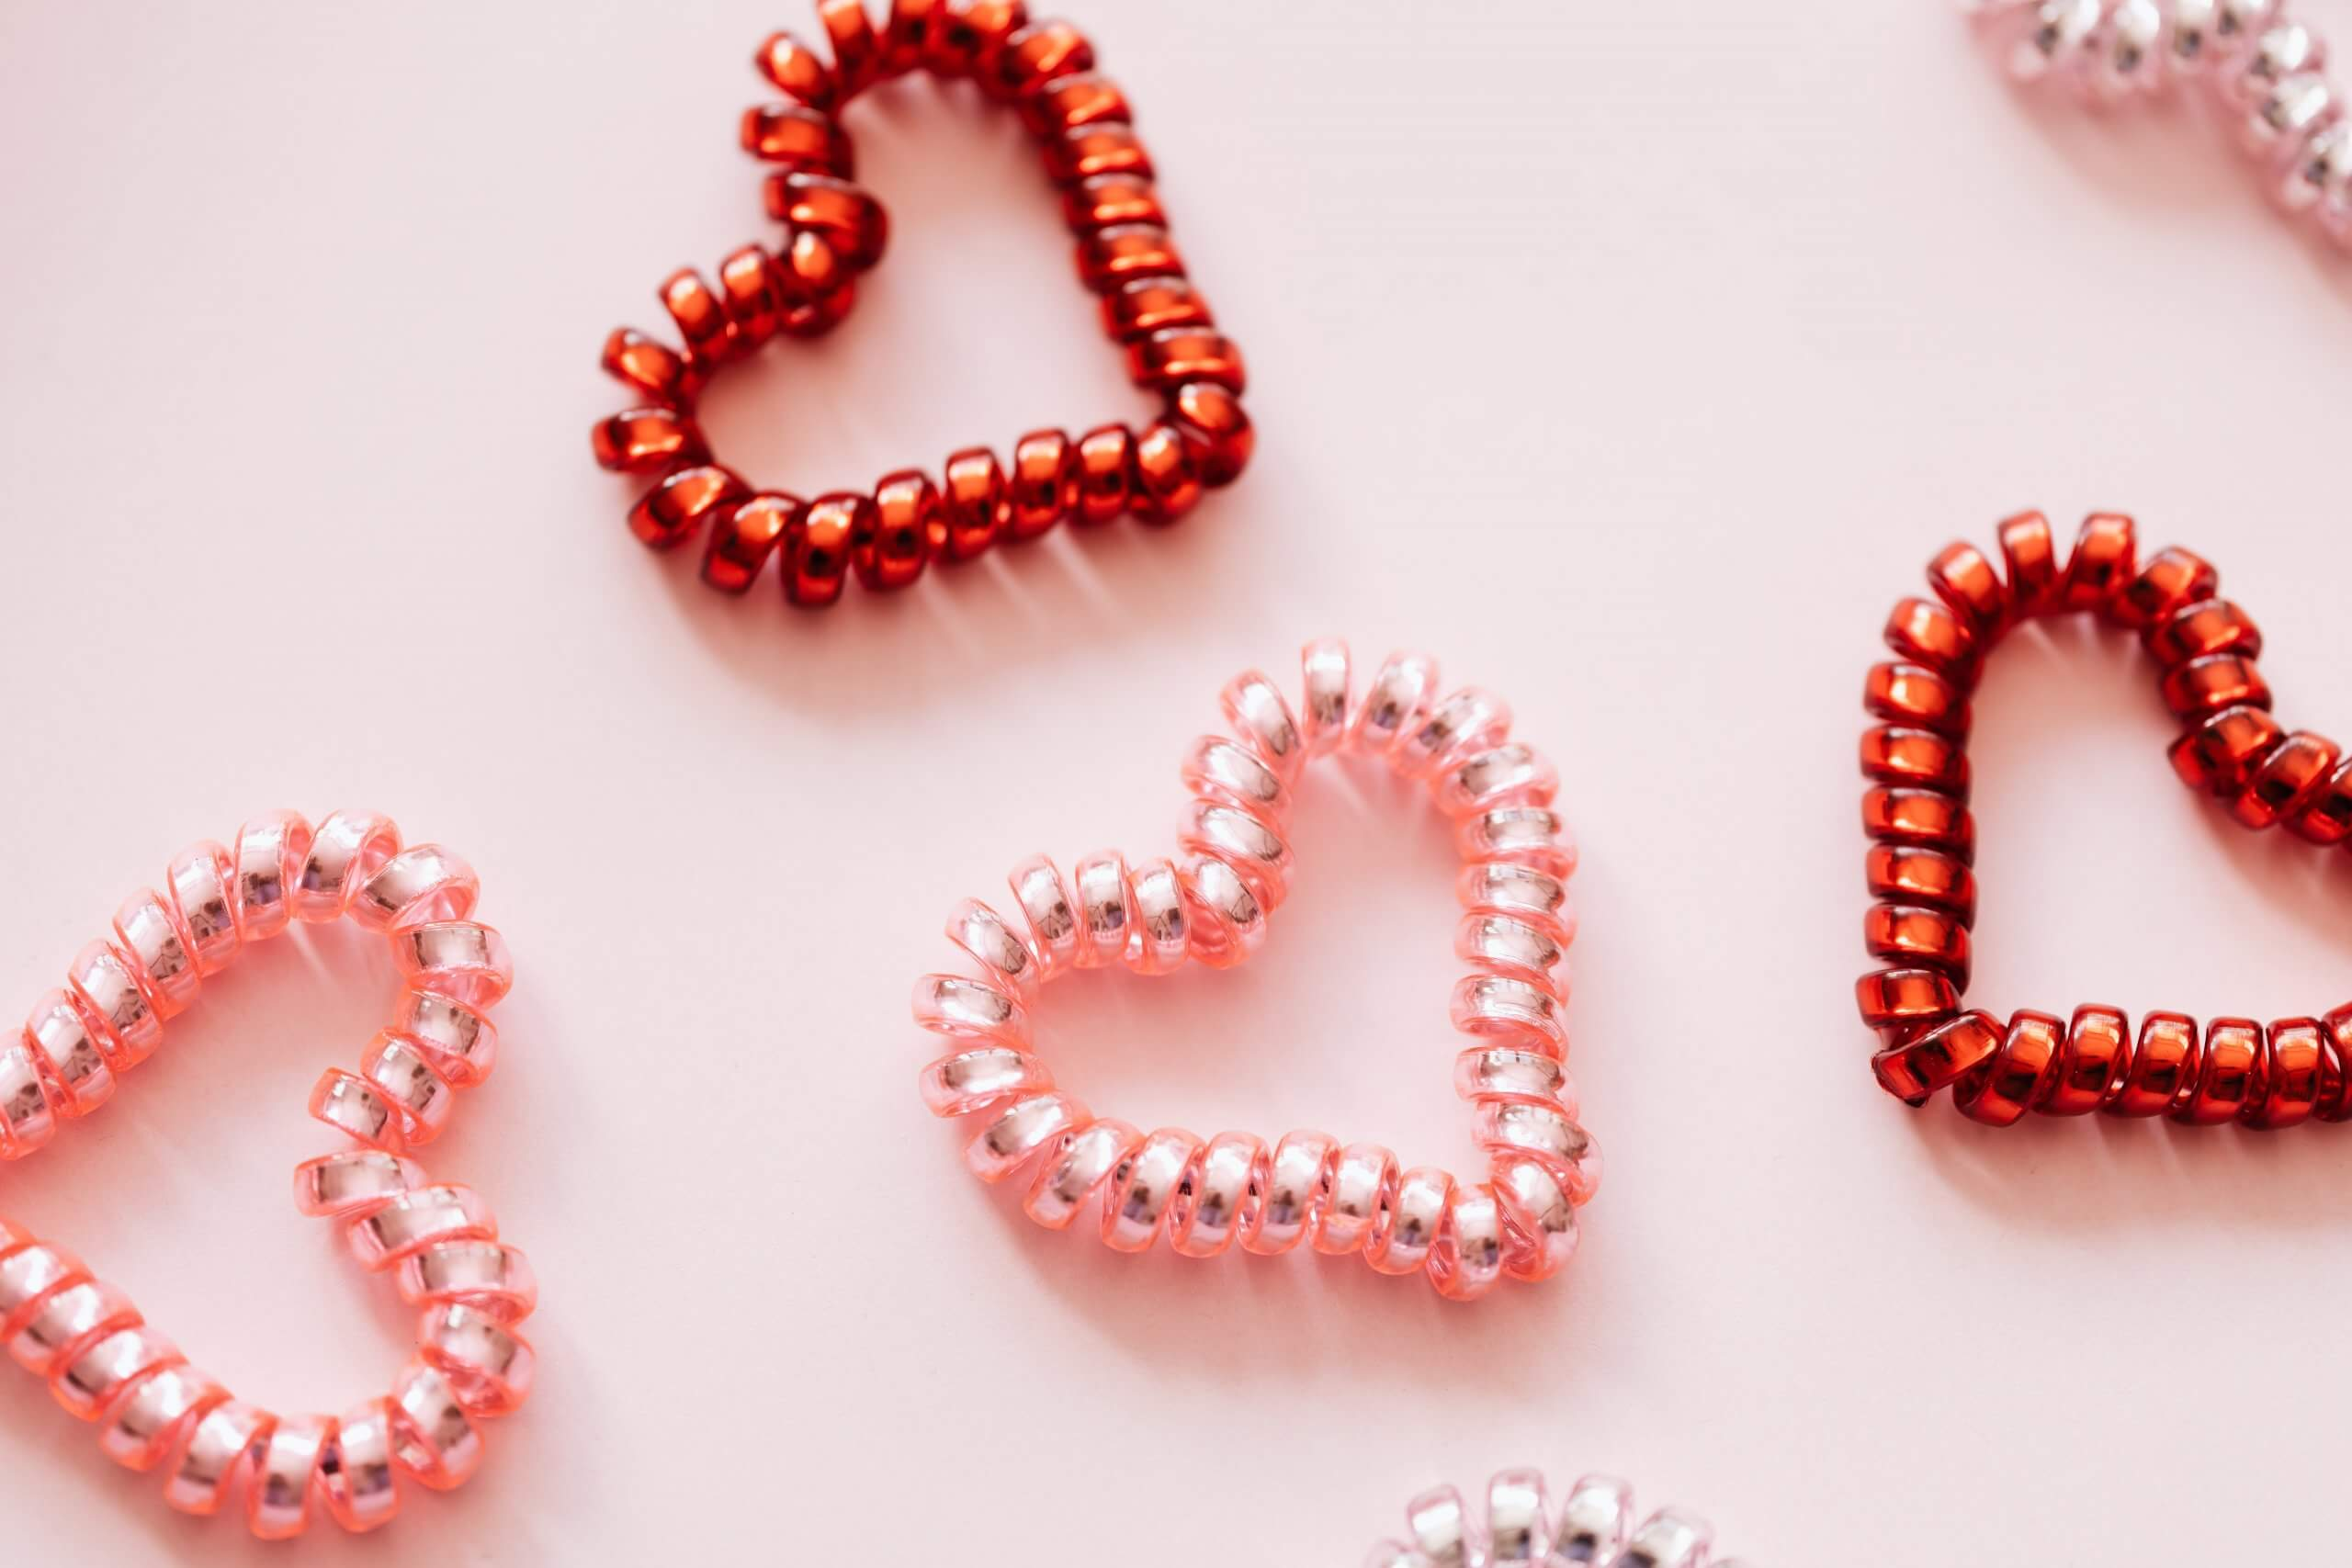 hearts made from beads